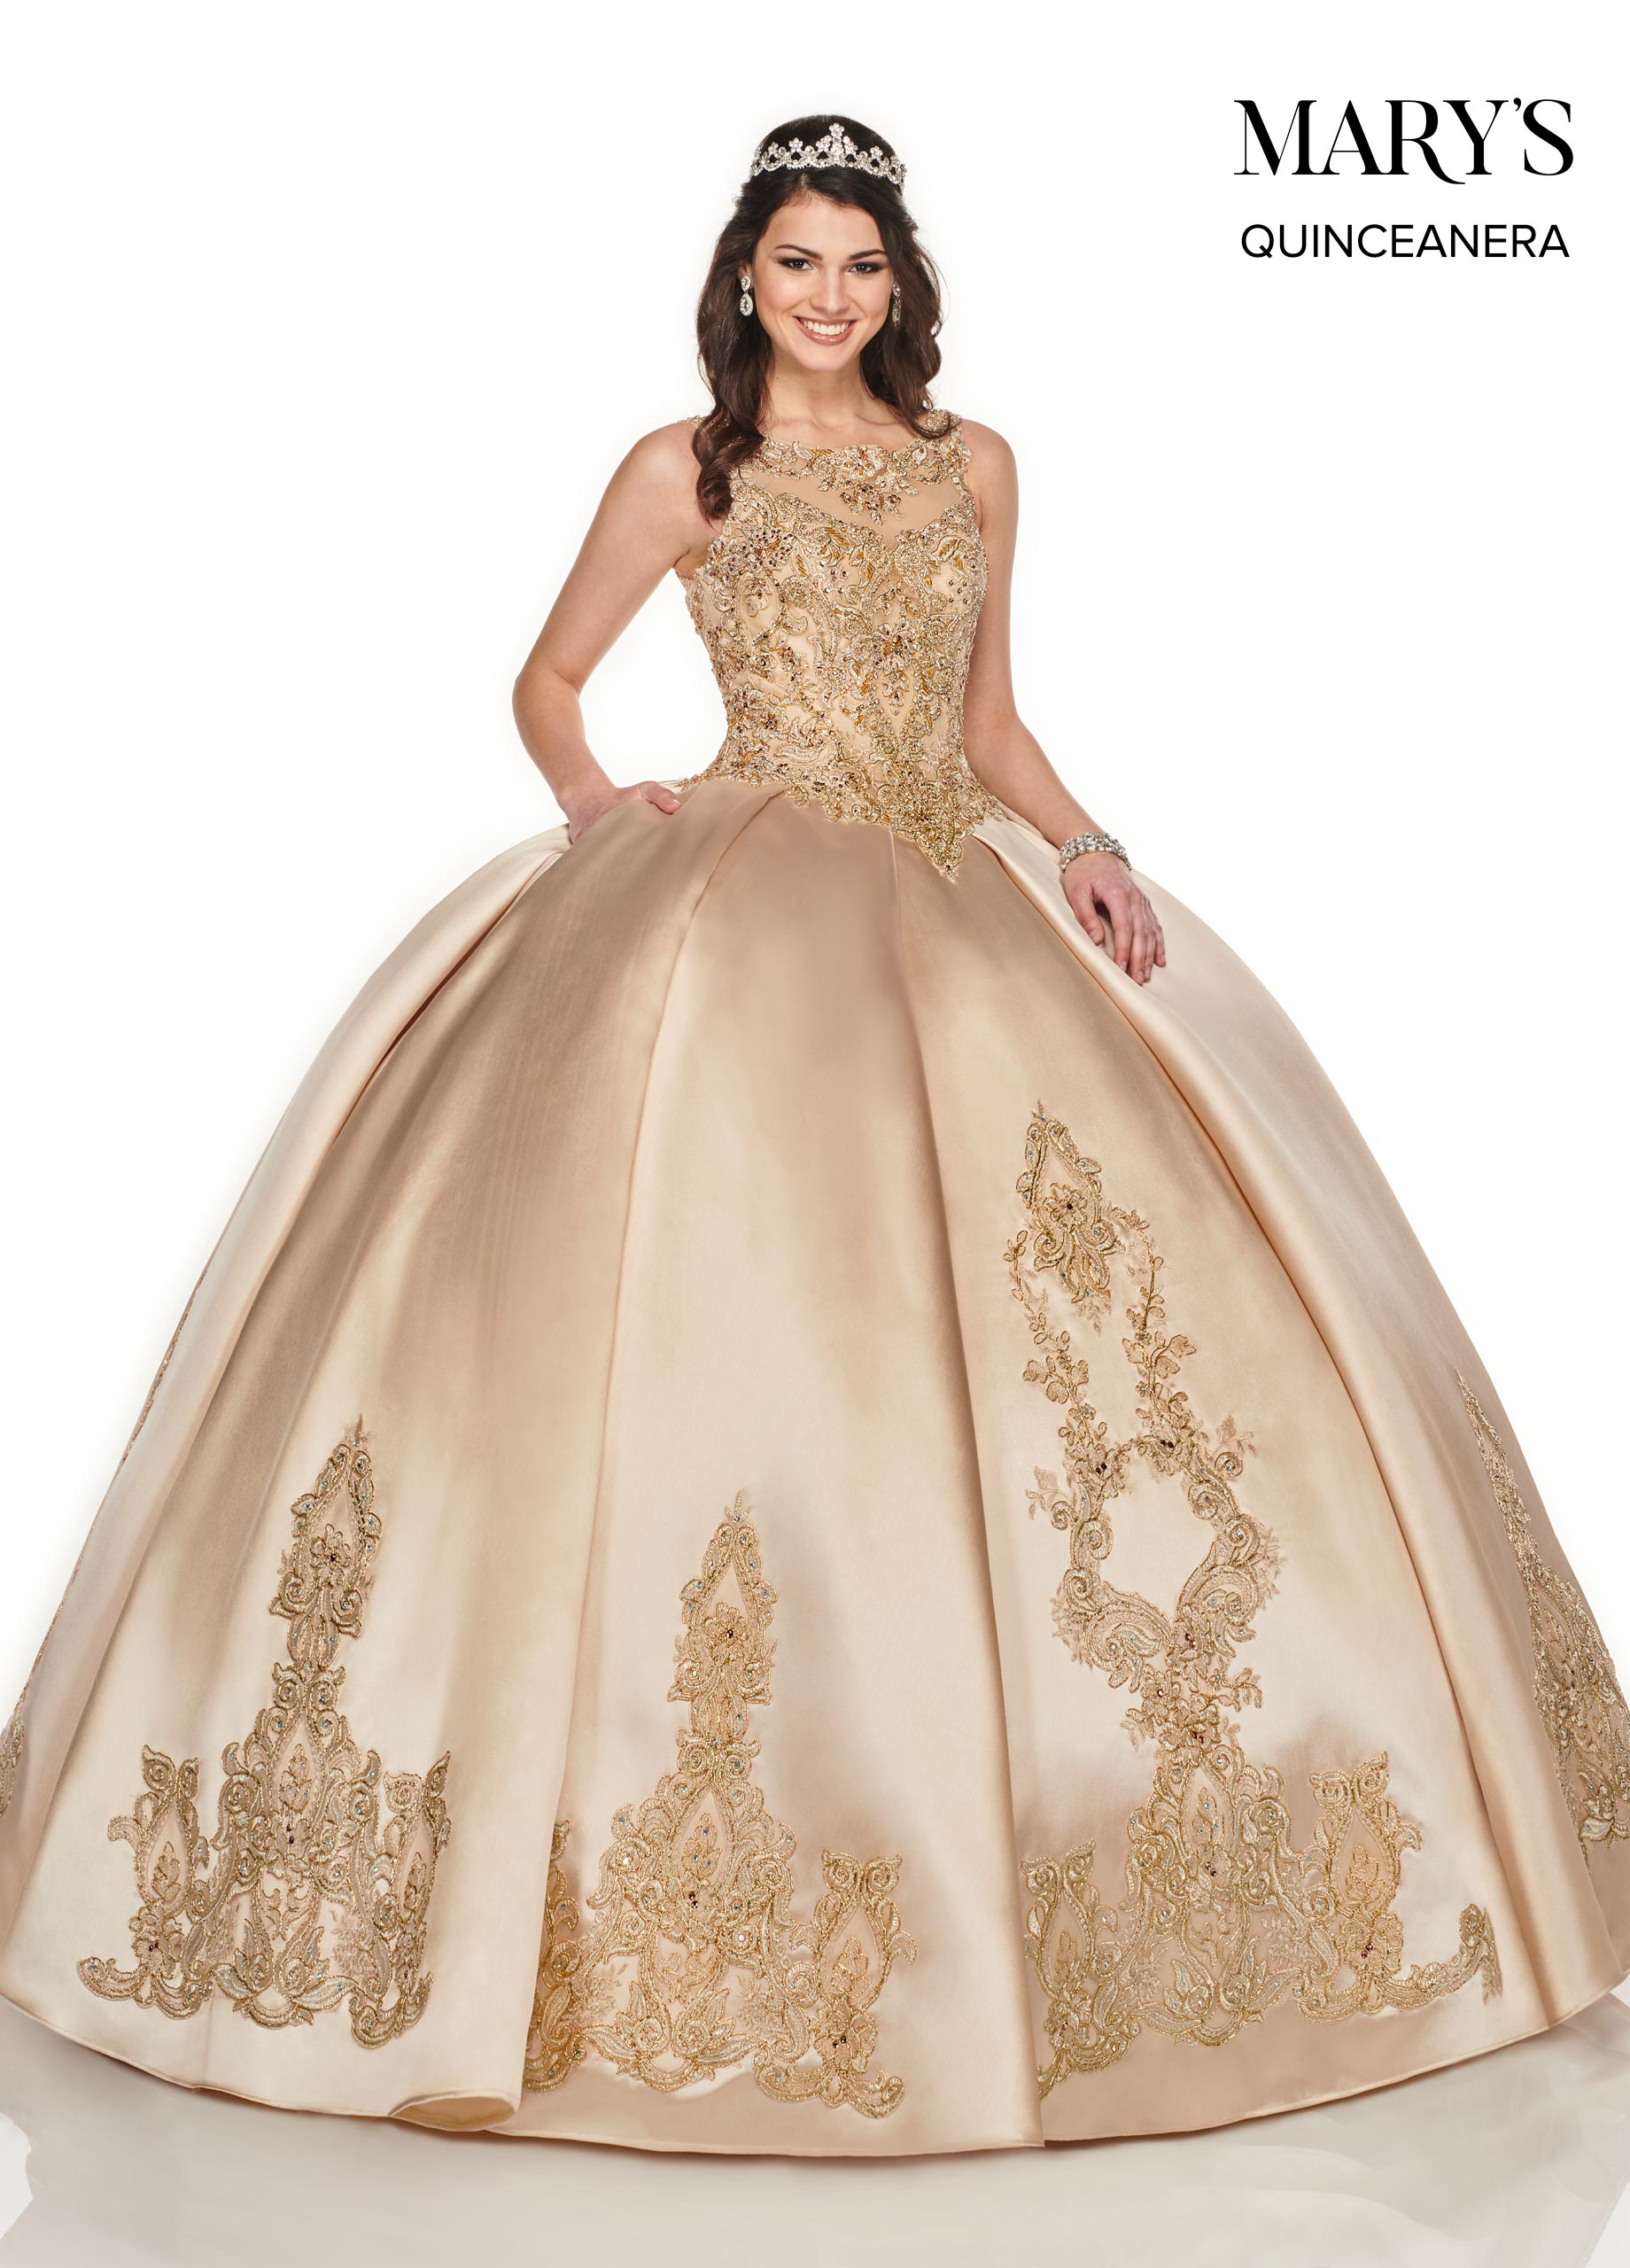 Marys Quinceanera Dresses | Mary's Quinceanera | Style - MQ2081